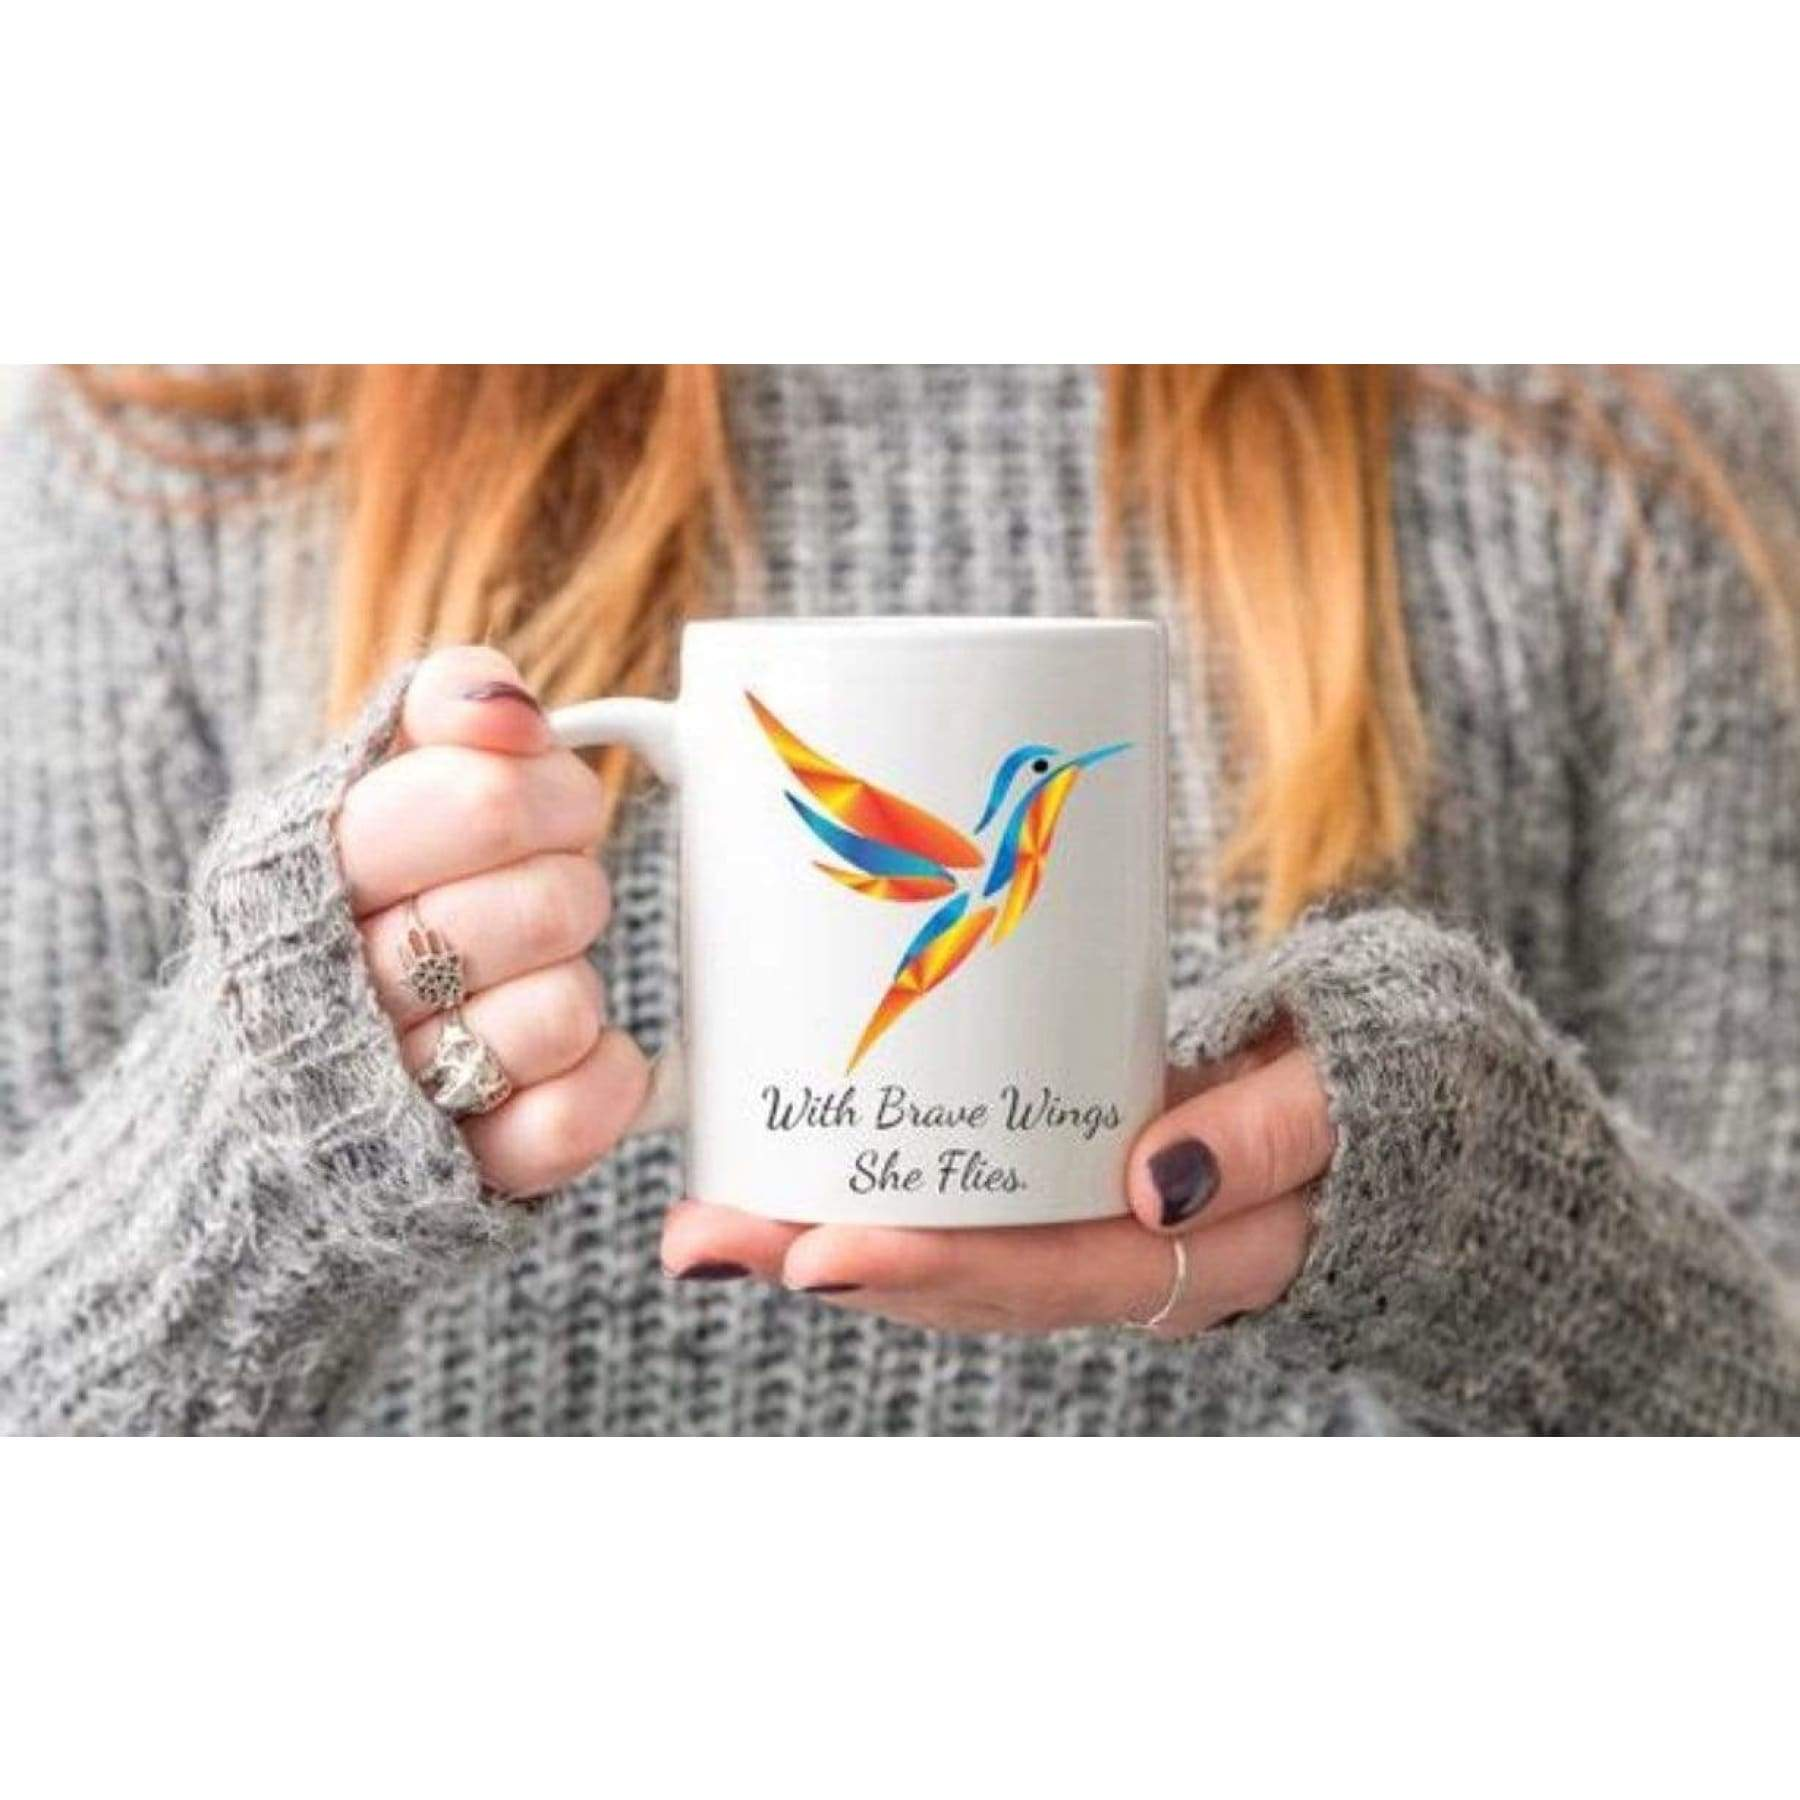 With Brave Wings Shes flies, Hummingbird Mugs.